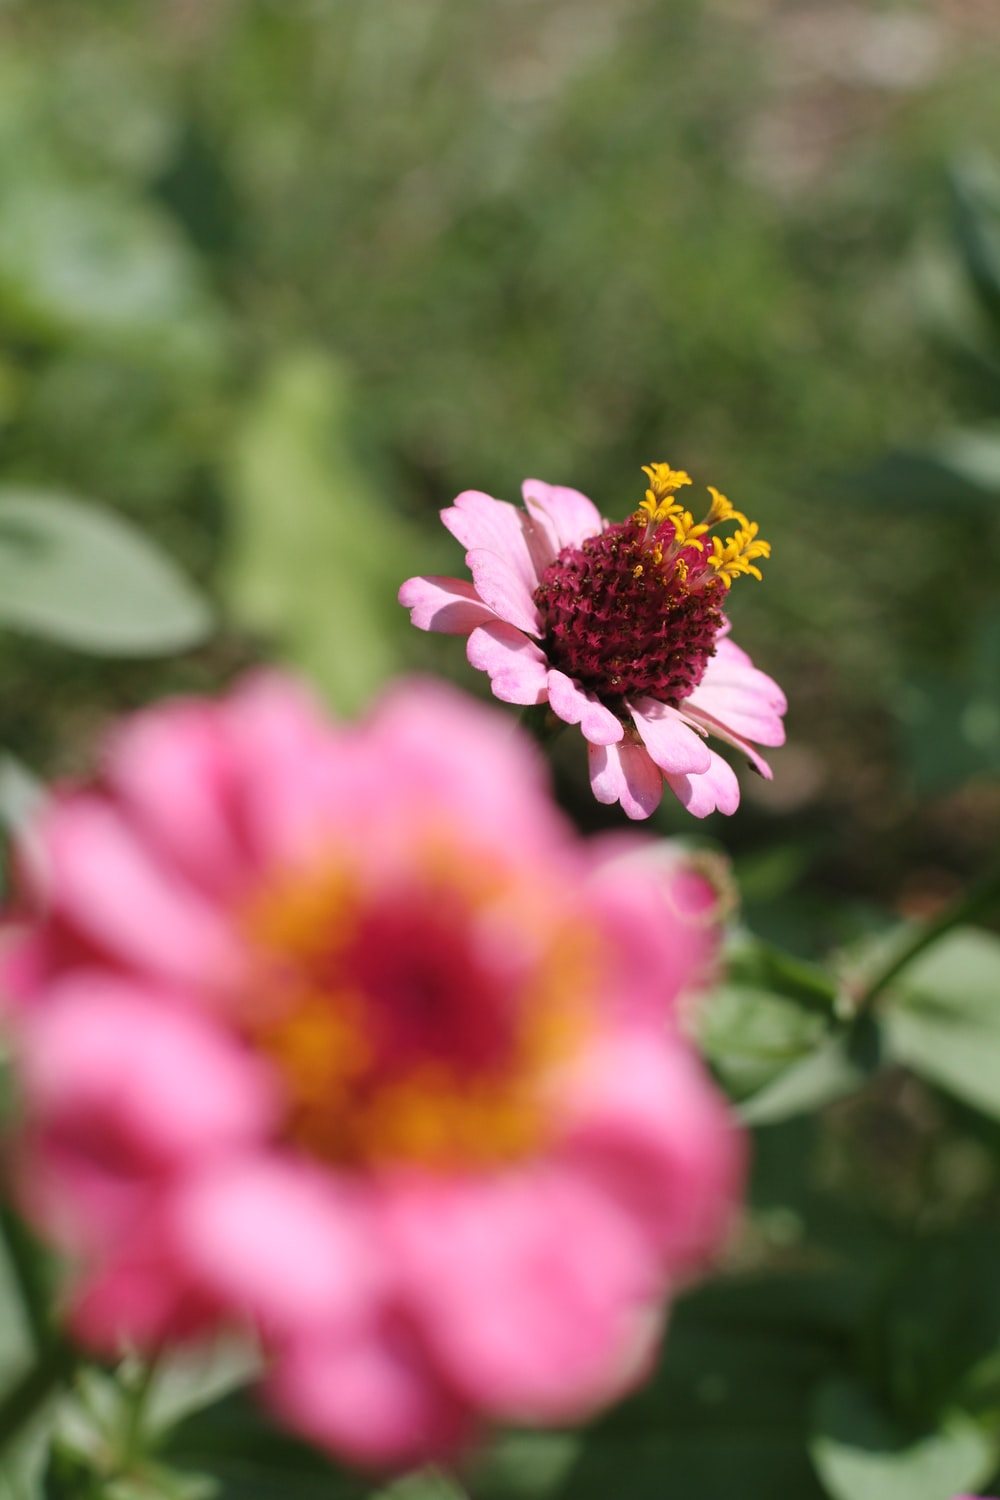 pink and yellow flower in tilt shift lens